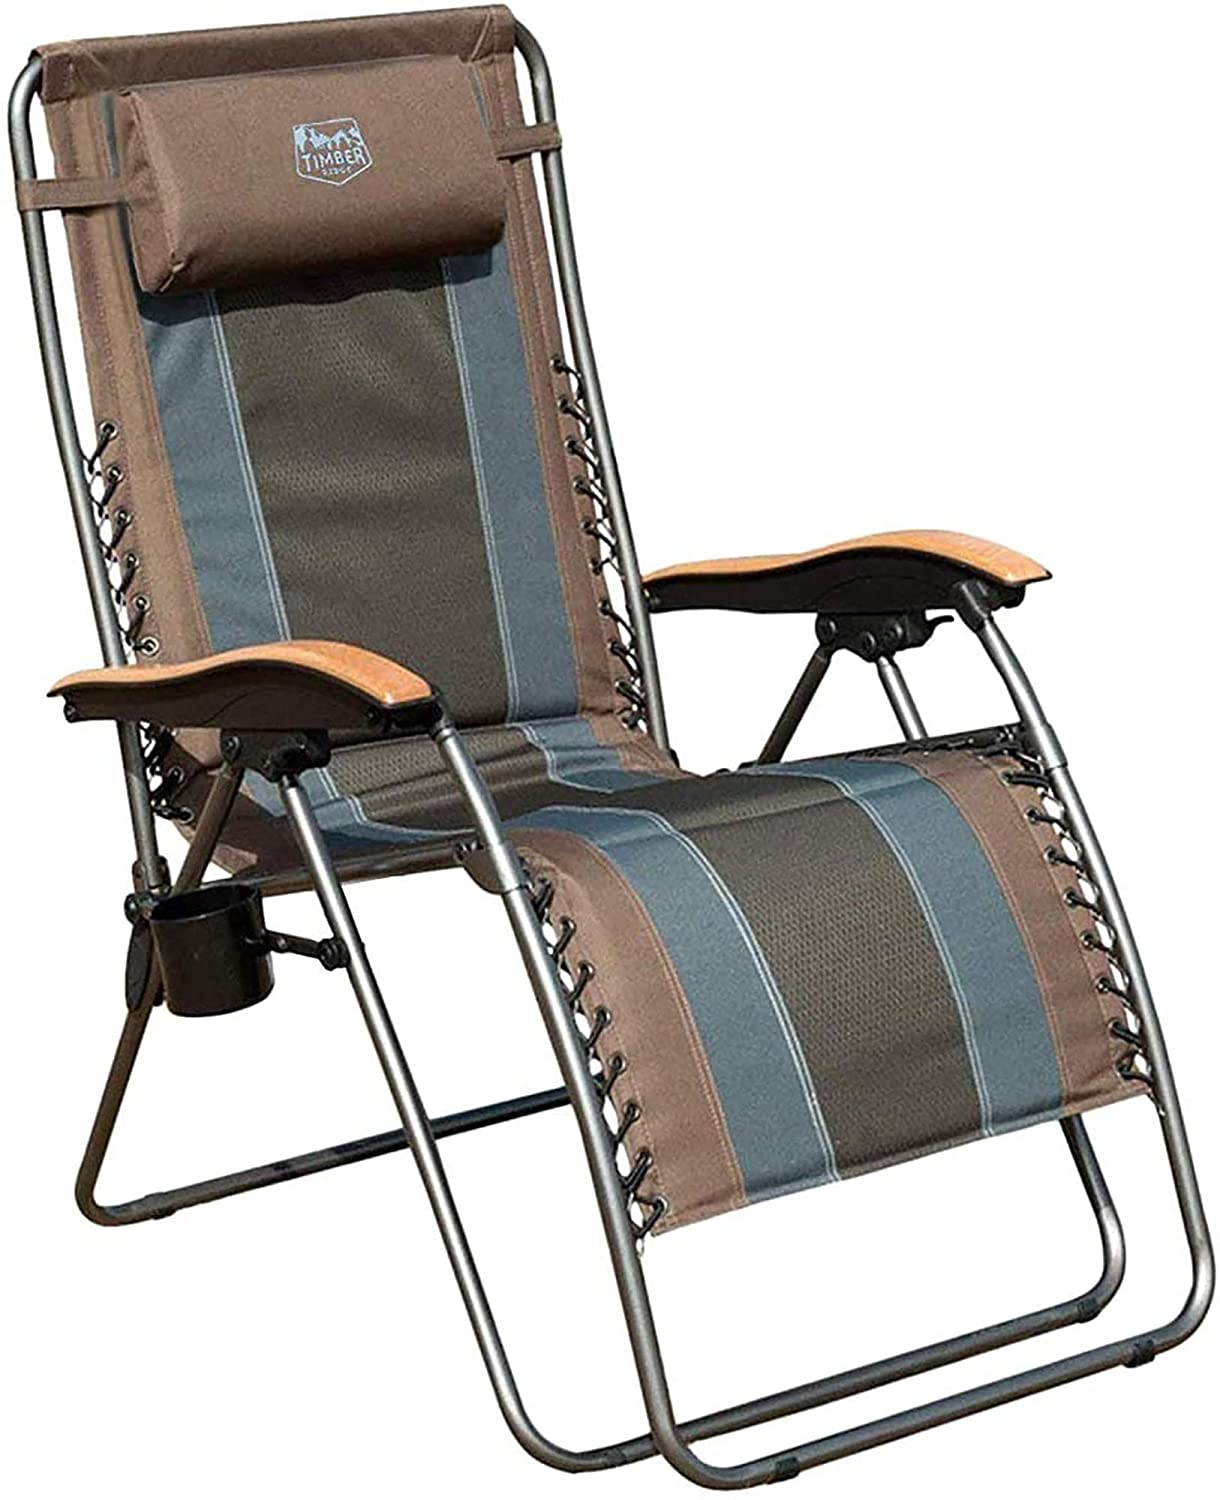 Best Zero Gravity Camping Chair Reviews 2021 22